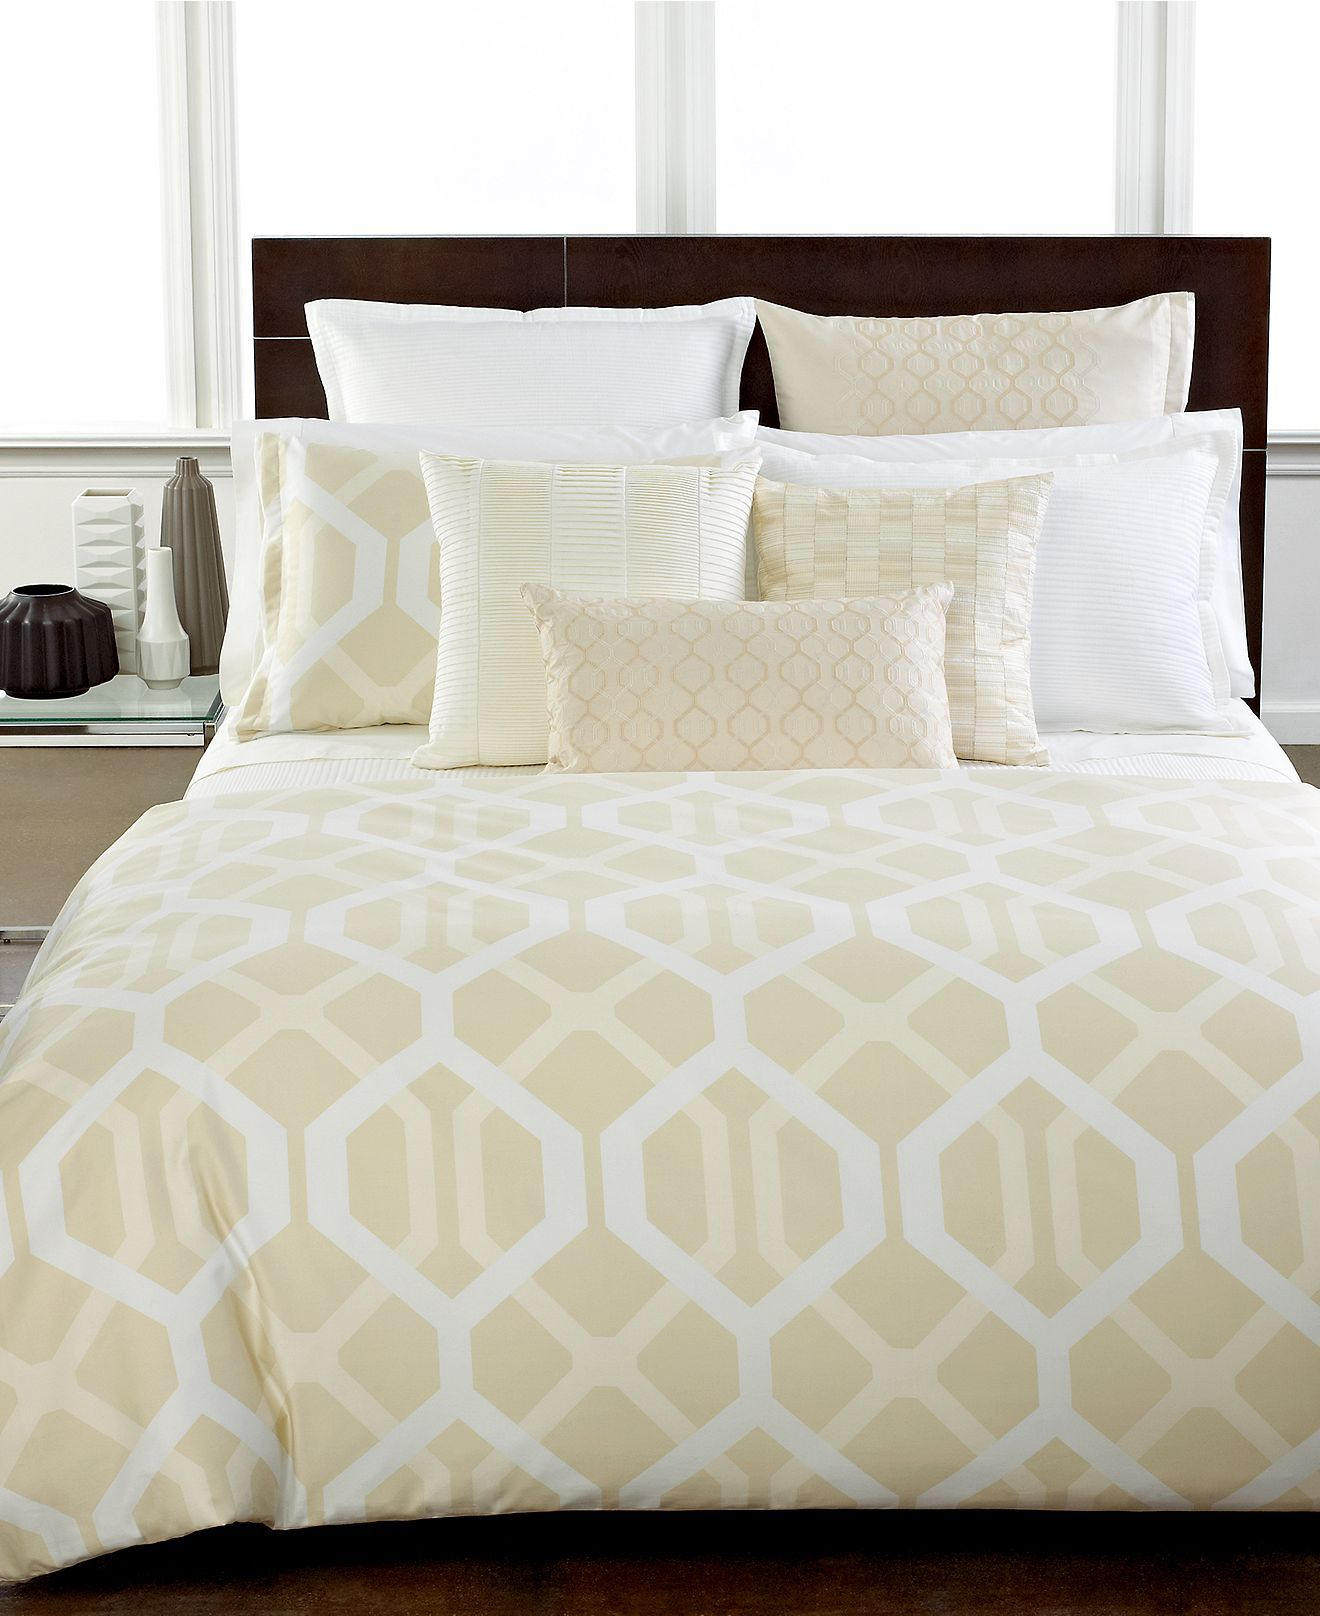 Hotel Collection Bedding Modern Nexus - Collections Bed & Bath Macys